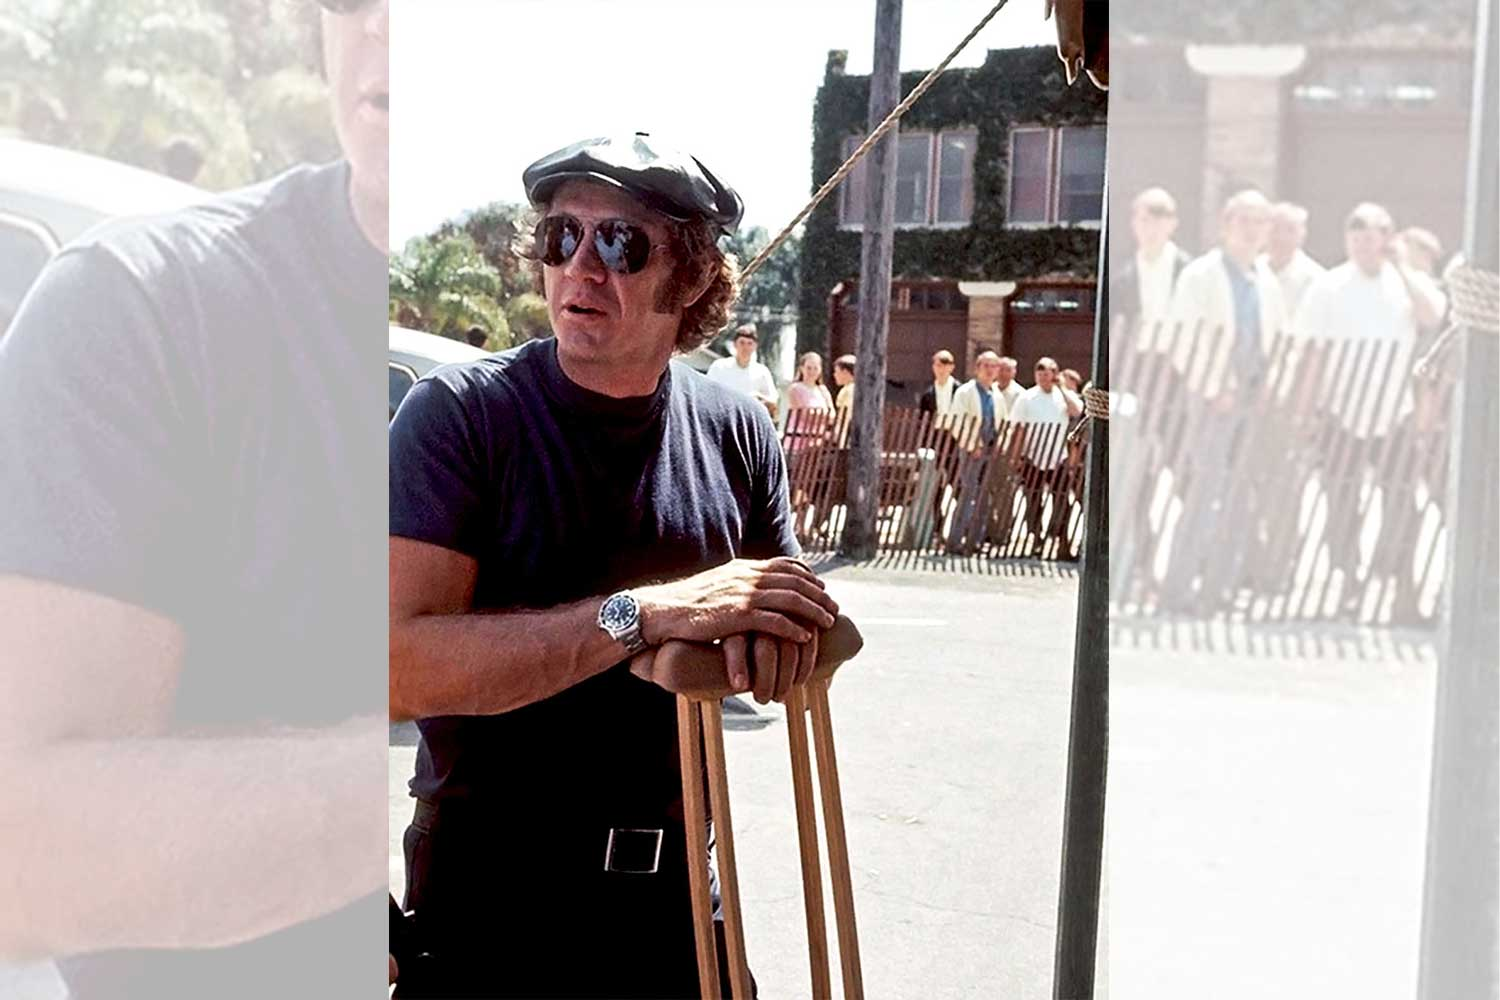 Steve McQueen on crutches at the Sebring 1970 after a an injury from a motorcycle accident two weeks earlier; the watch on his wrist, his Submariner 5512 (Image: rolexmagazine.com)